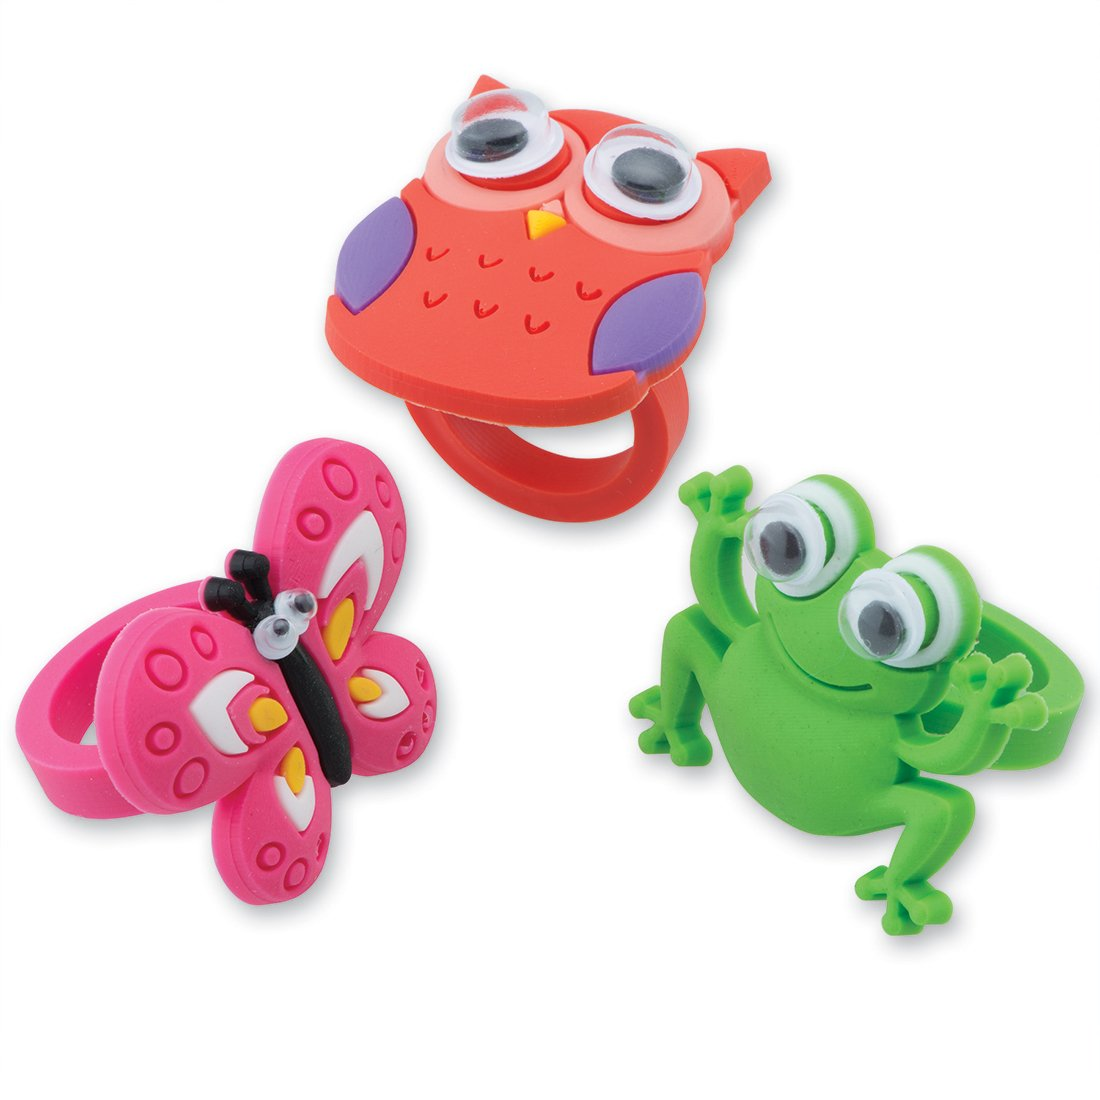 SmileMakers Cute Creature Rings - Prizes 48 per Pack by SmileMakers